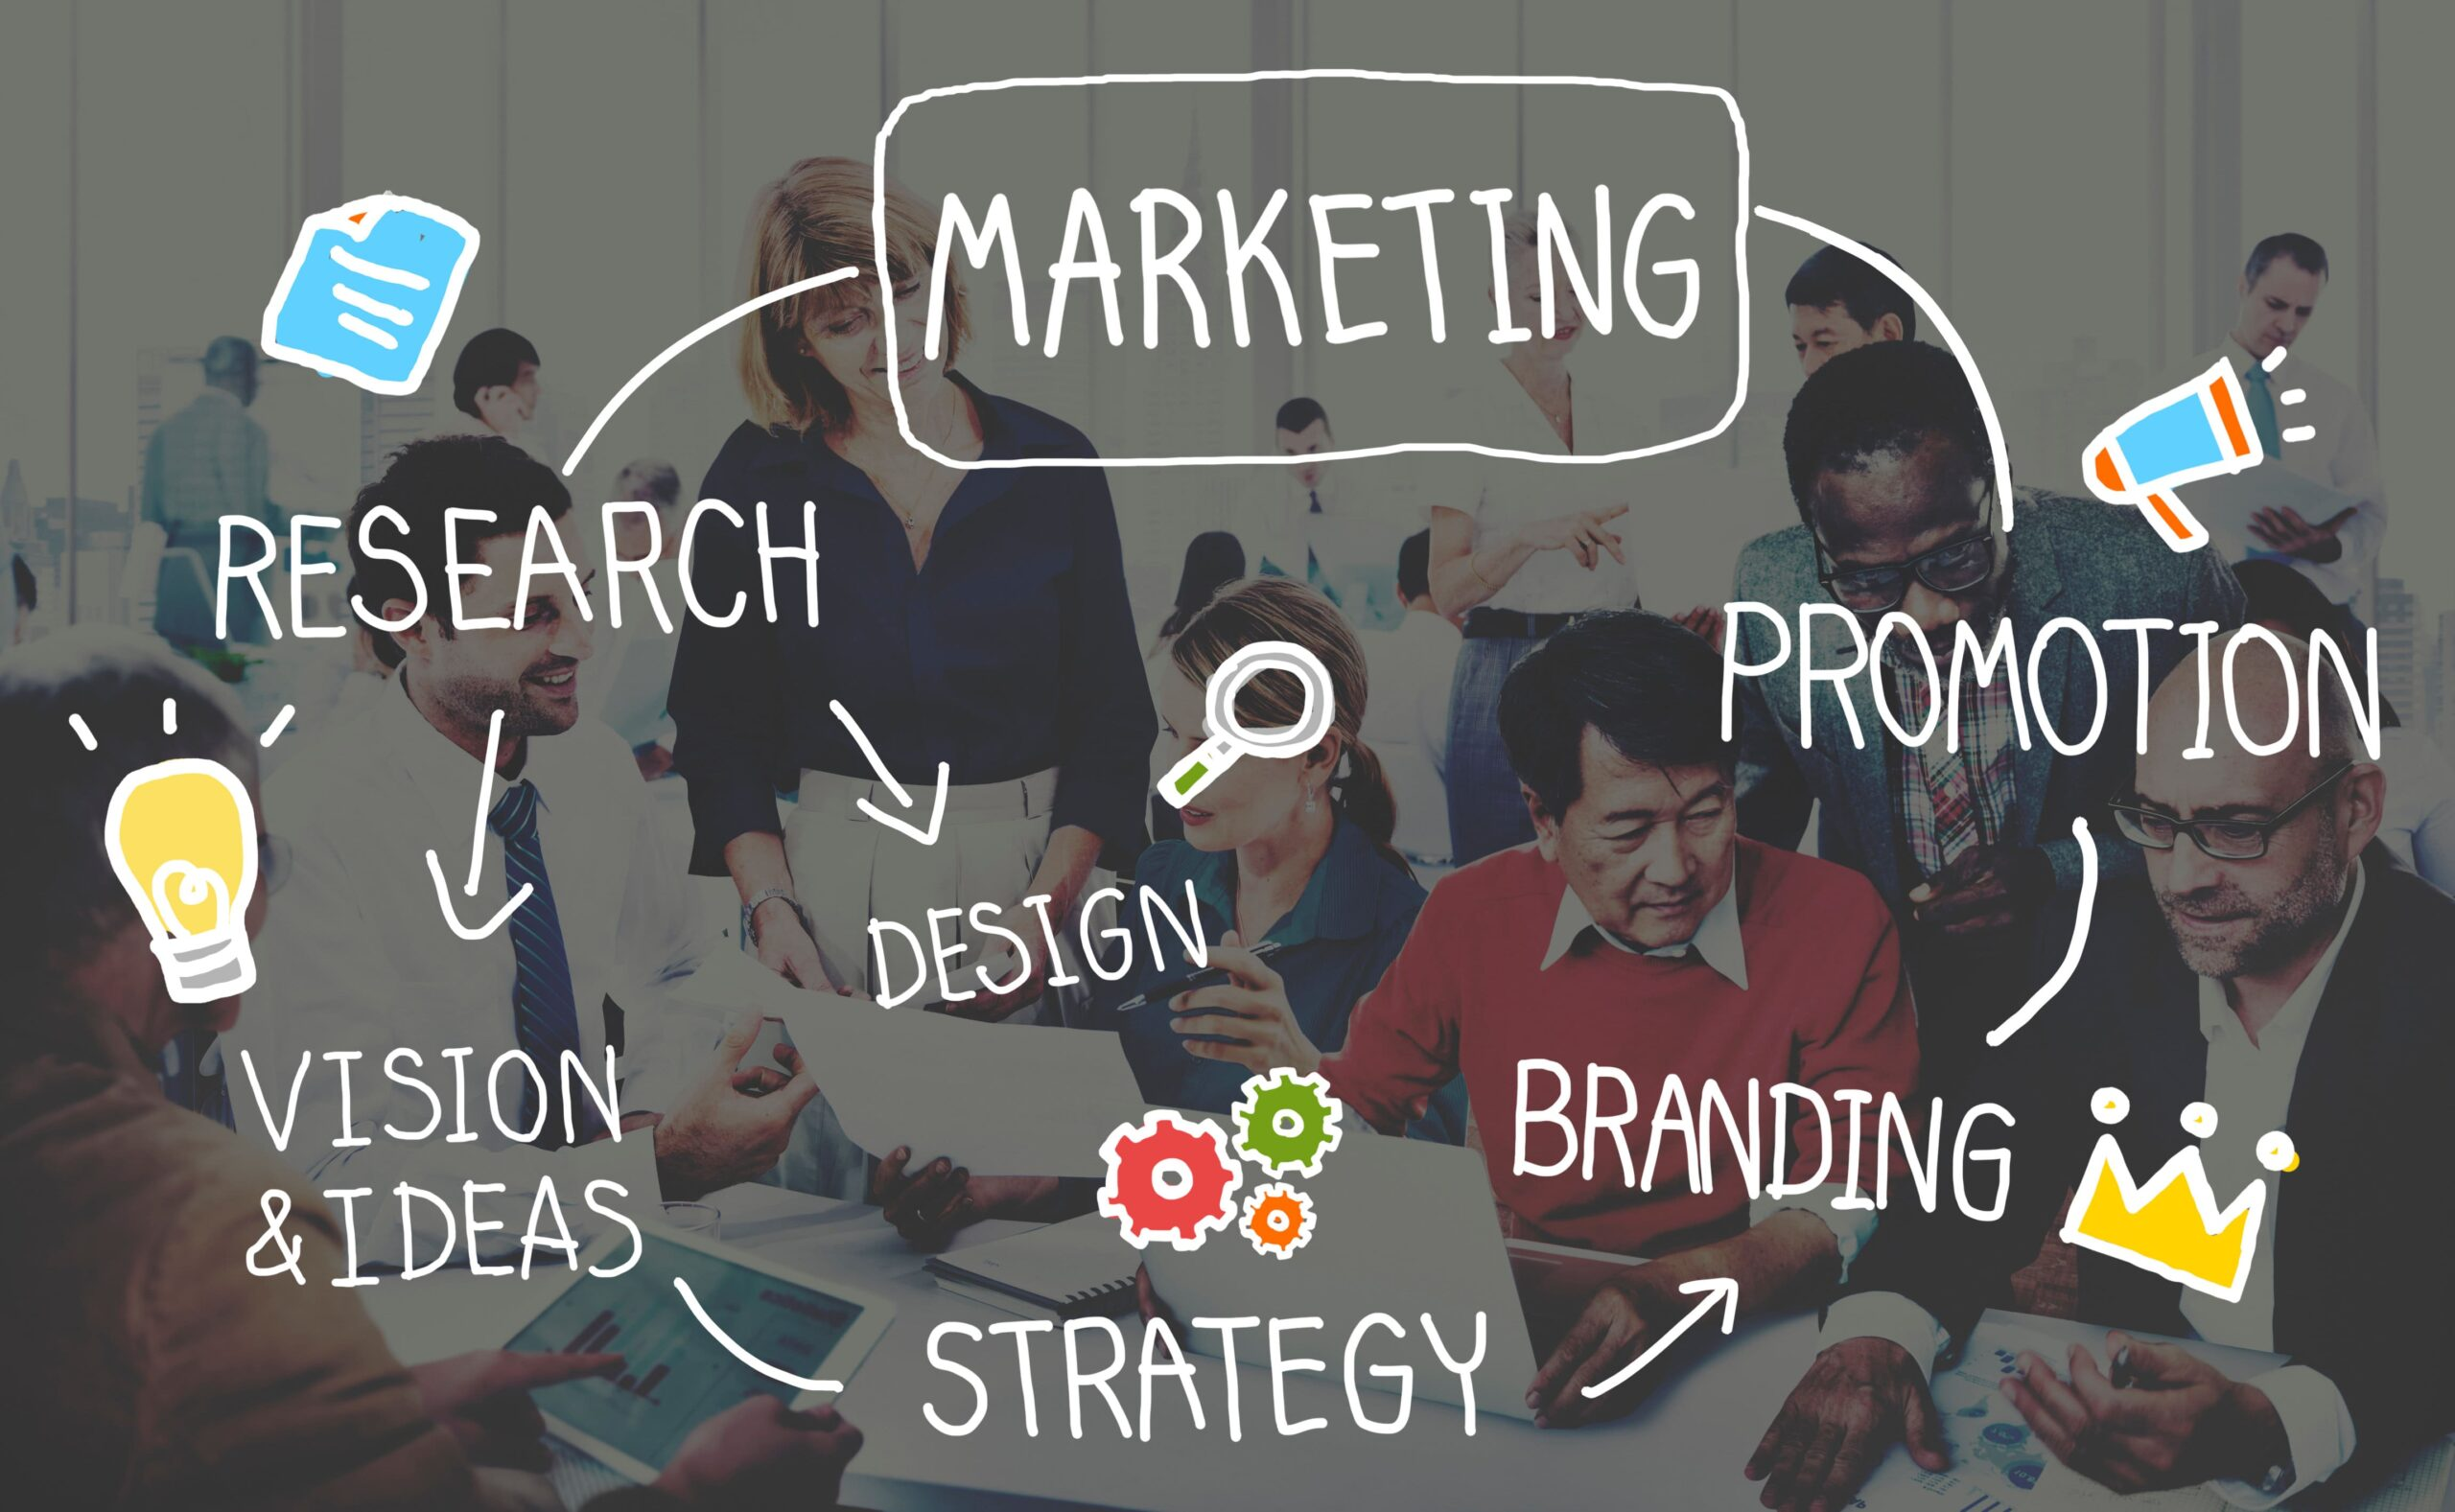 Marketing Strategy Business Information Vision Target Concept - marketing tips for child care